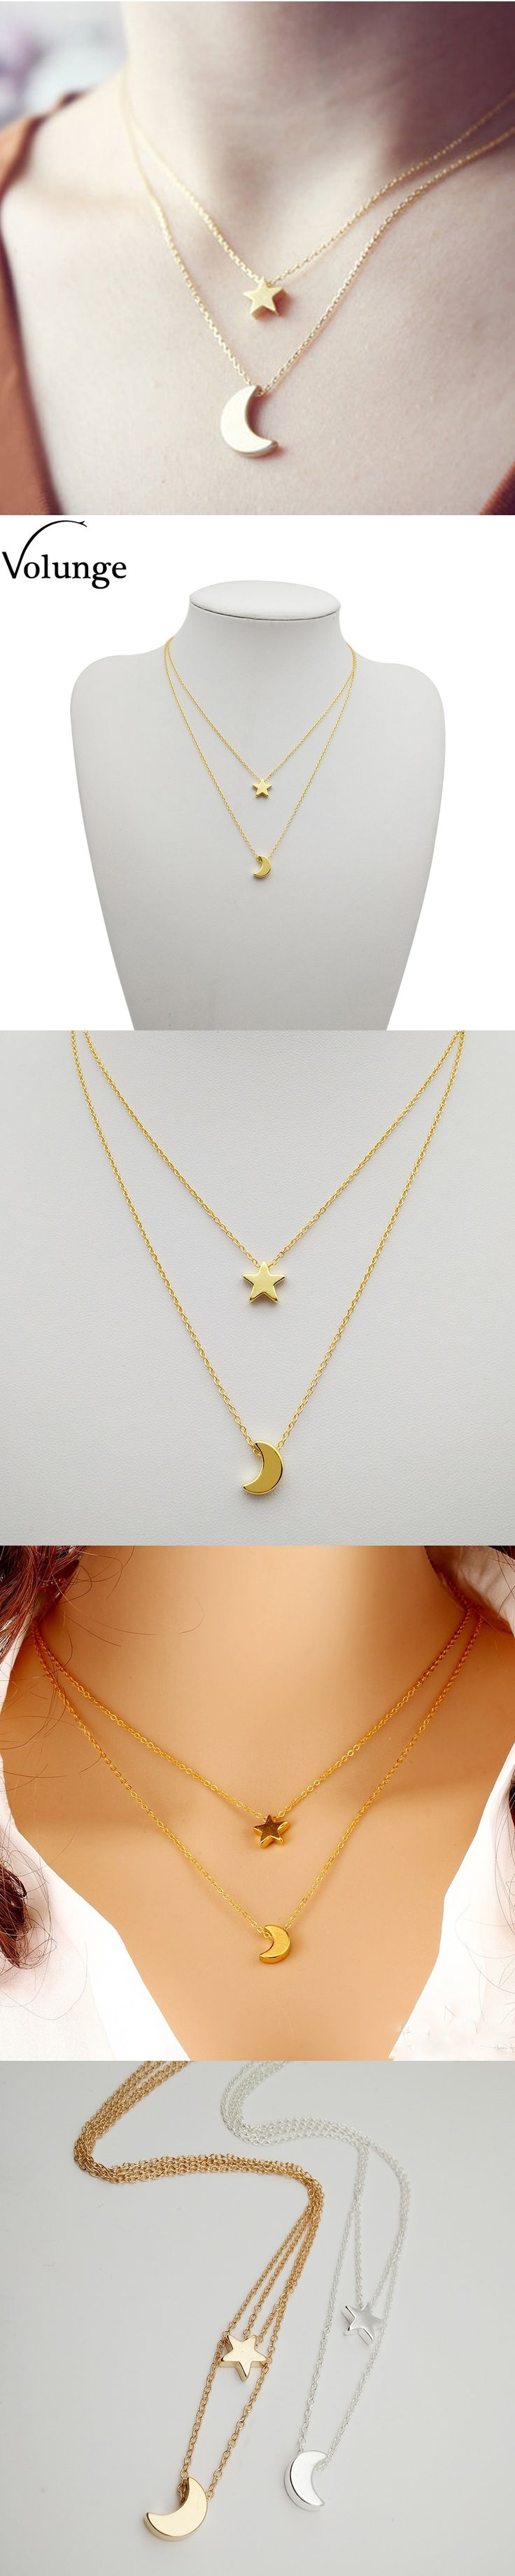 Volunge Fashion Simple Alloy Moon Star Pendant Short Necklaces Jewelry For Women Basic Design Metal Clavicle Chain Necklace